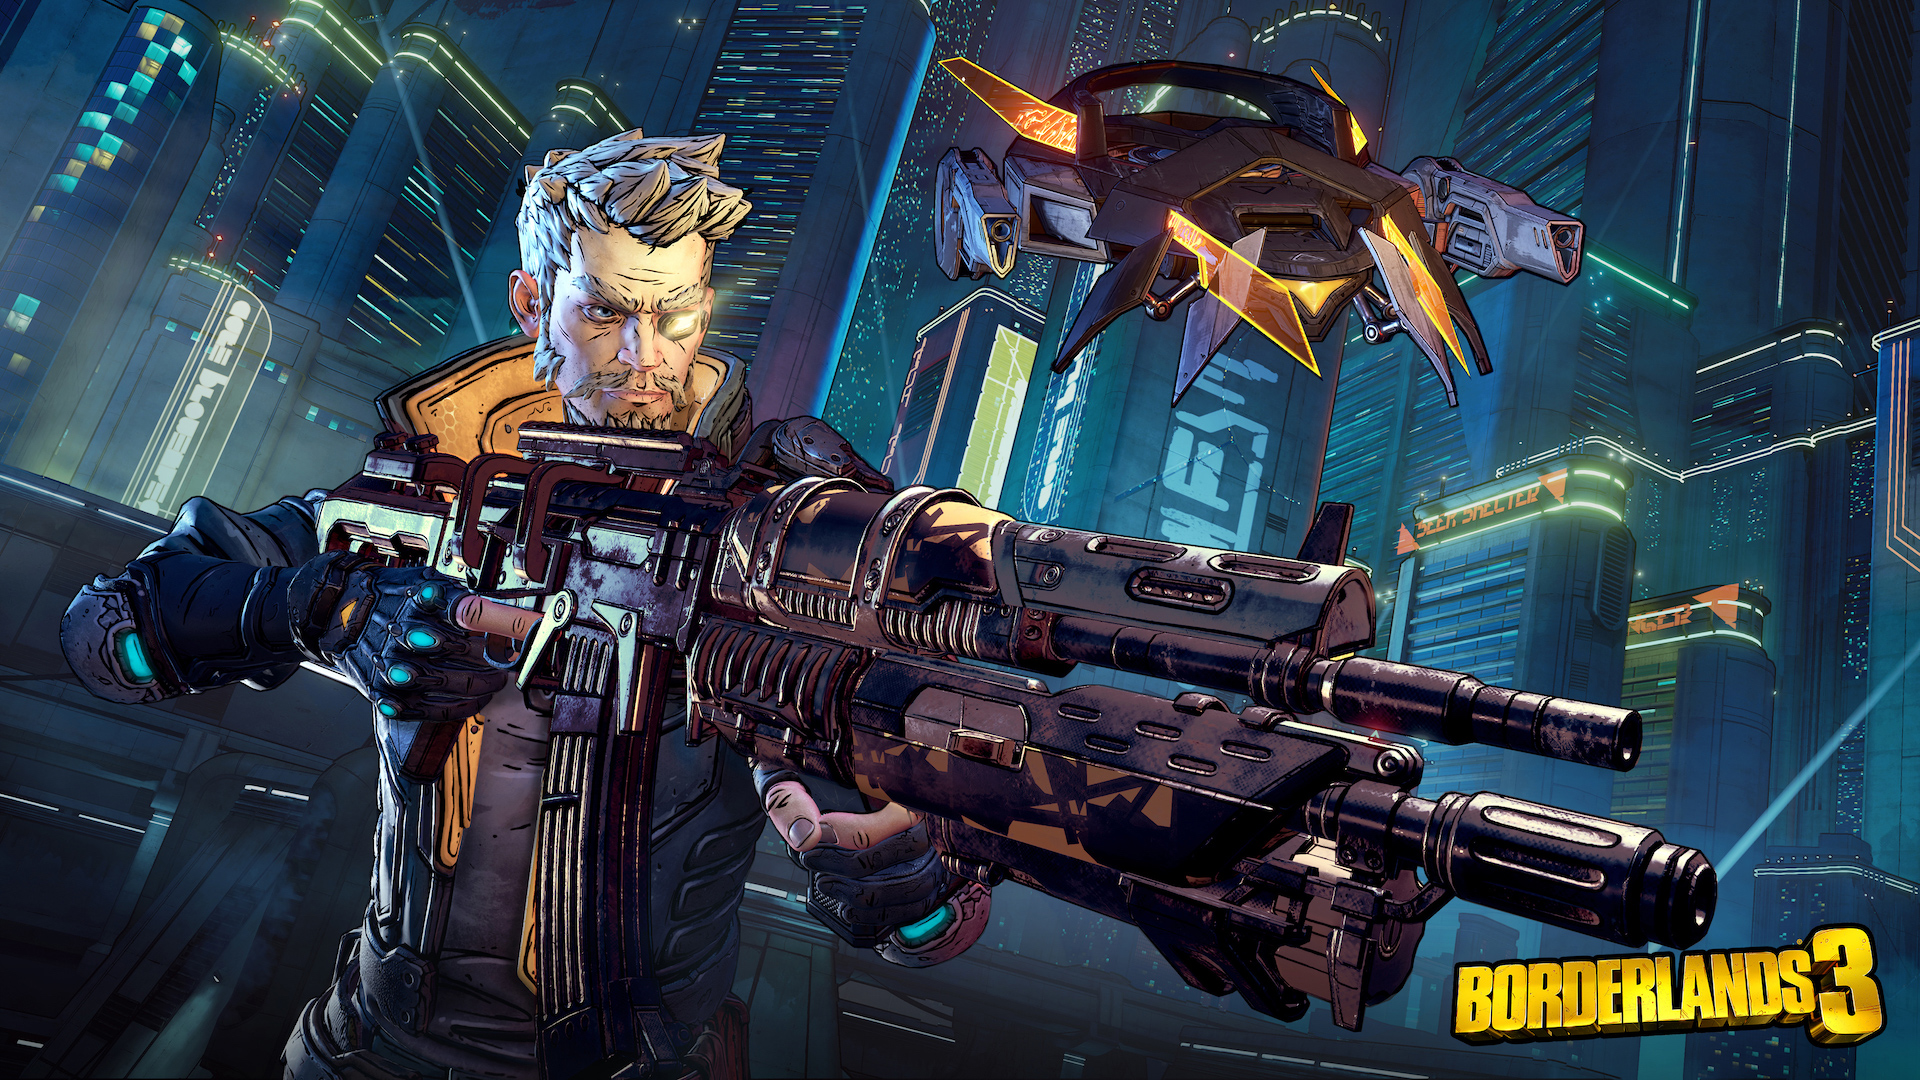 Borderlands 3 release date, trailers and new Borderlands